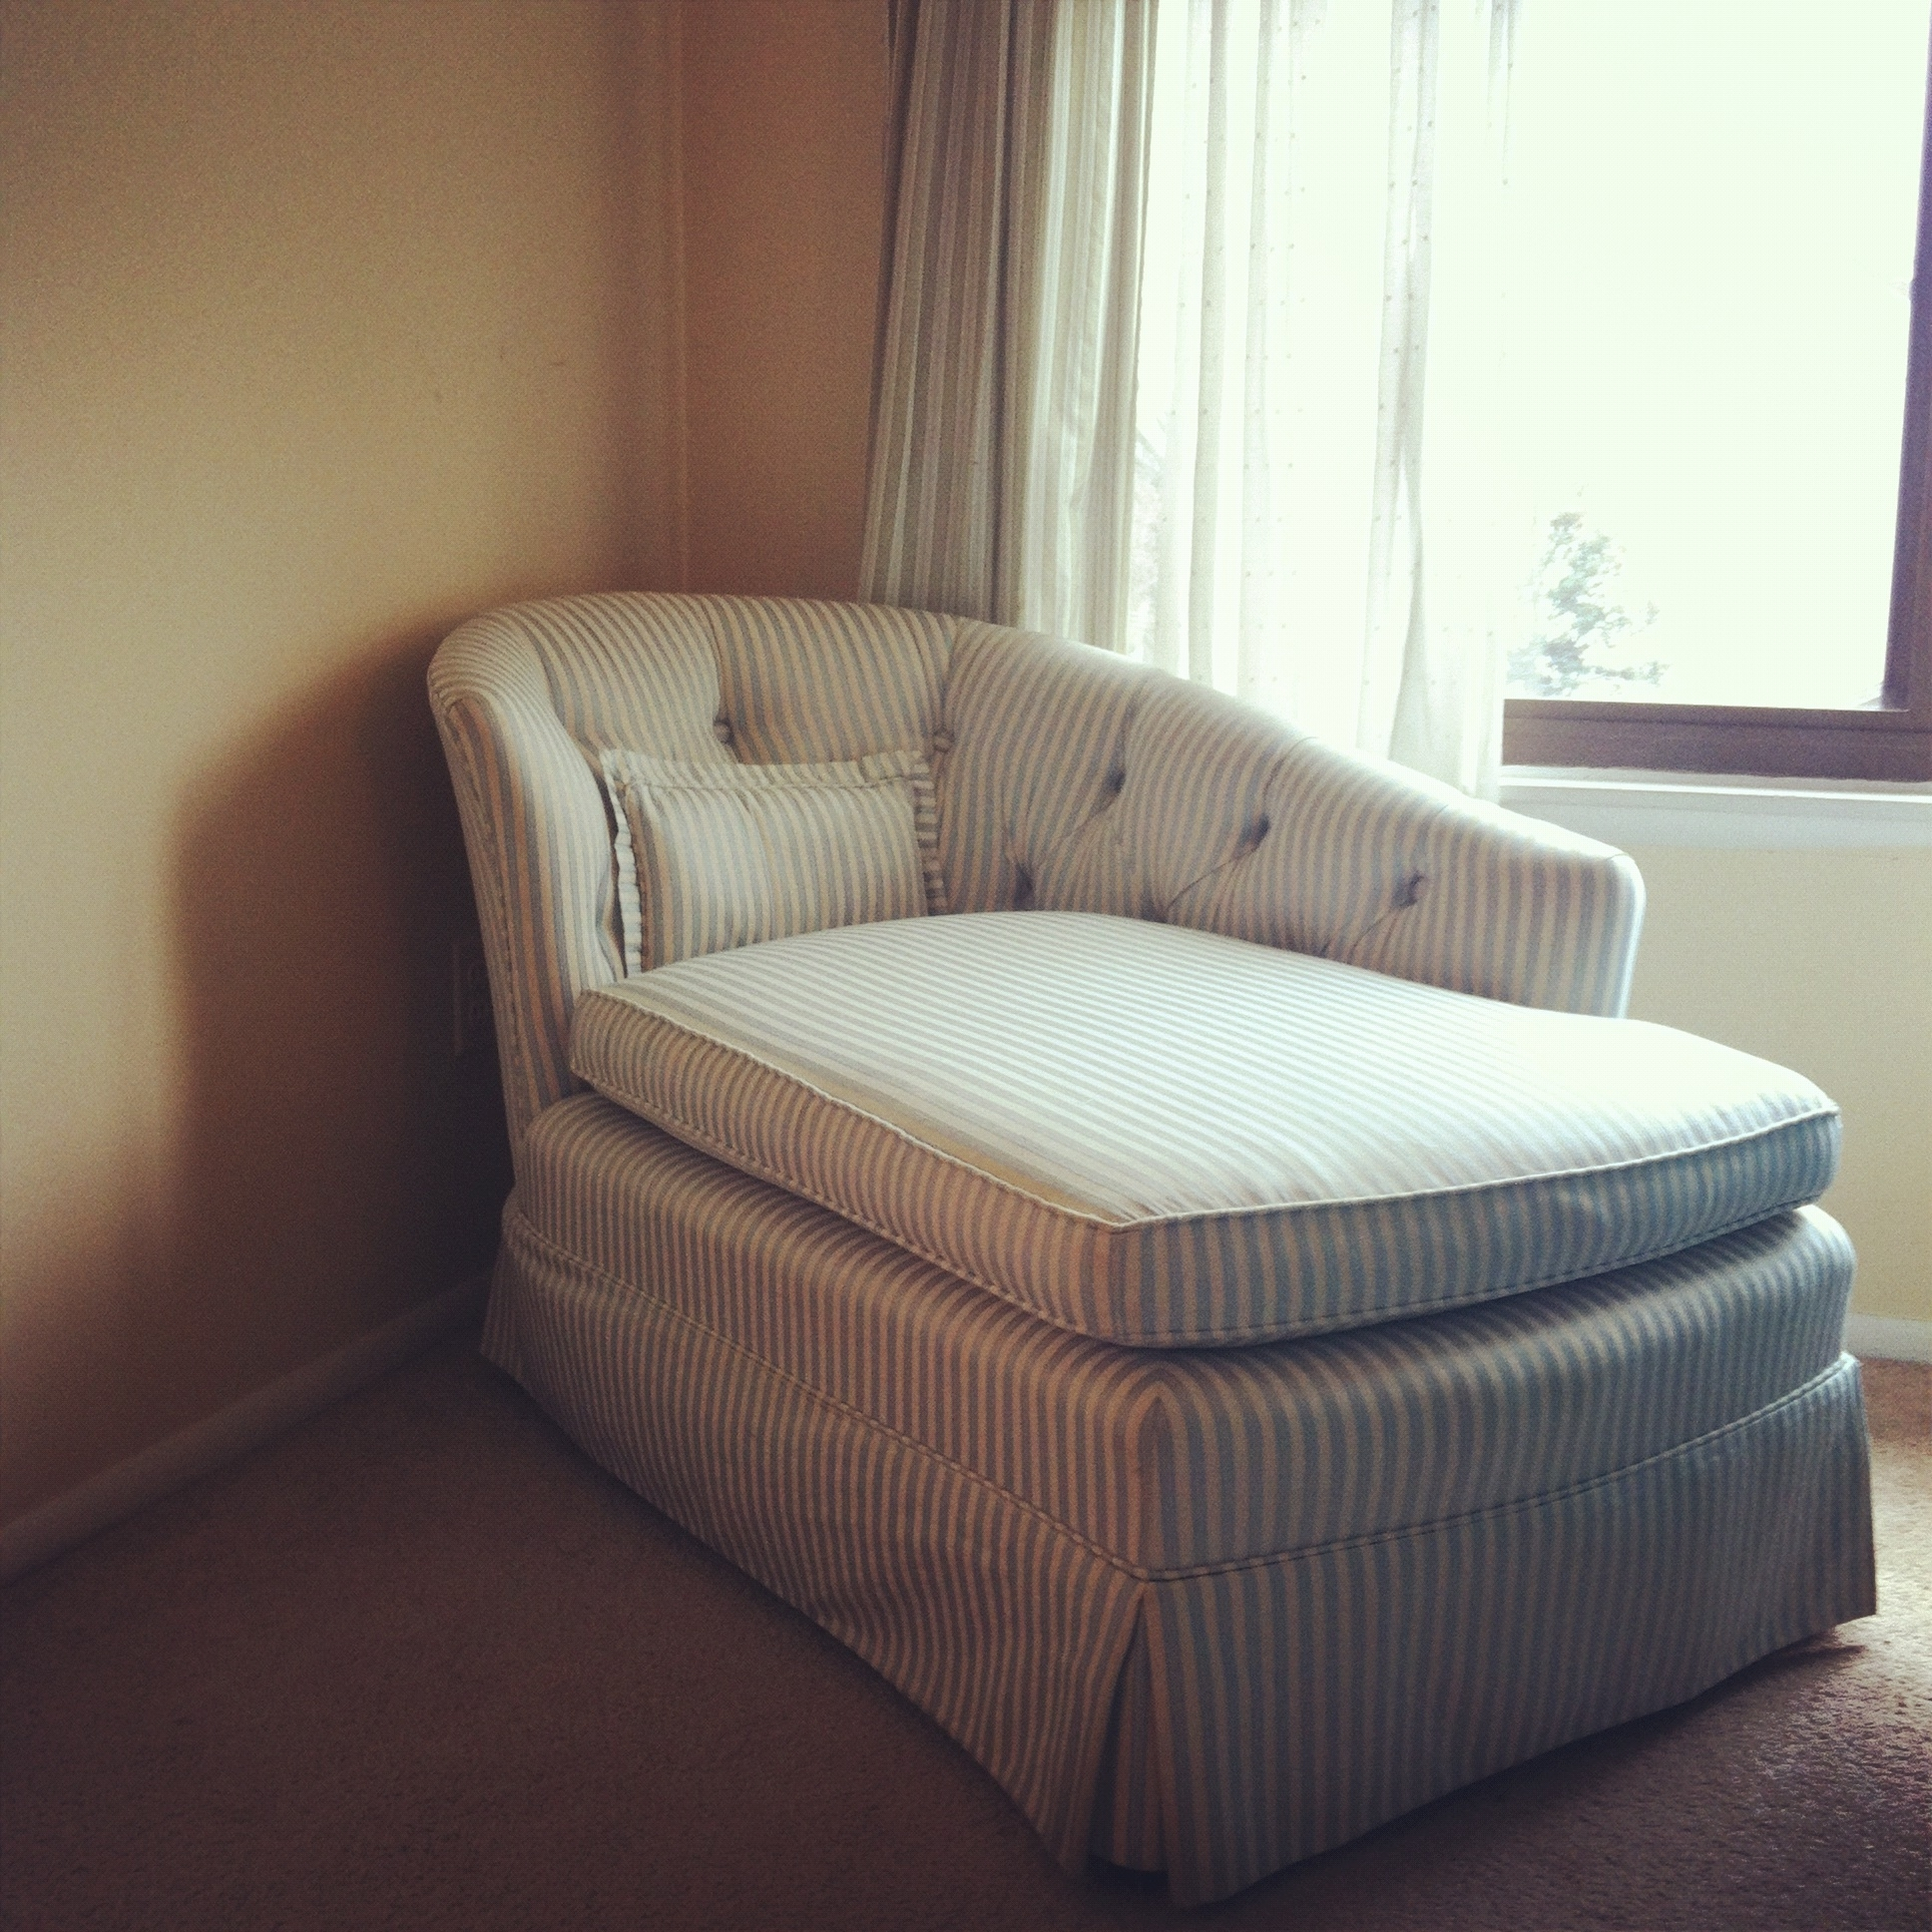 Small Skirted Striped Chaise Lounge Chair For Bedroom – Decofurnish Inside Recent Chairs With A Half Chaise (View 14 of 15)